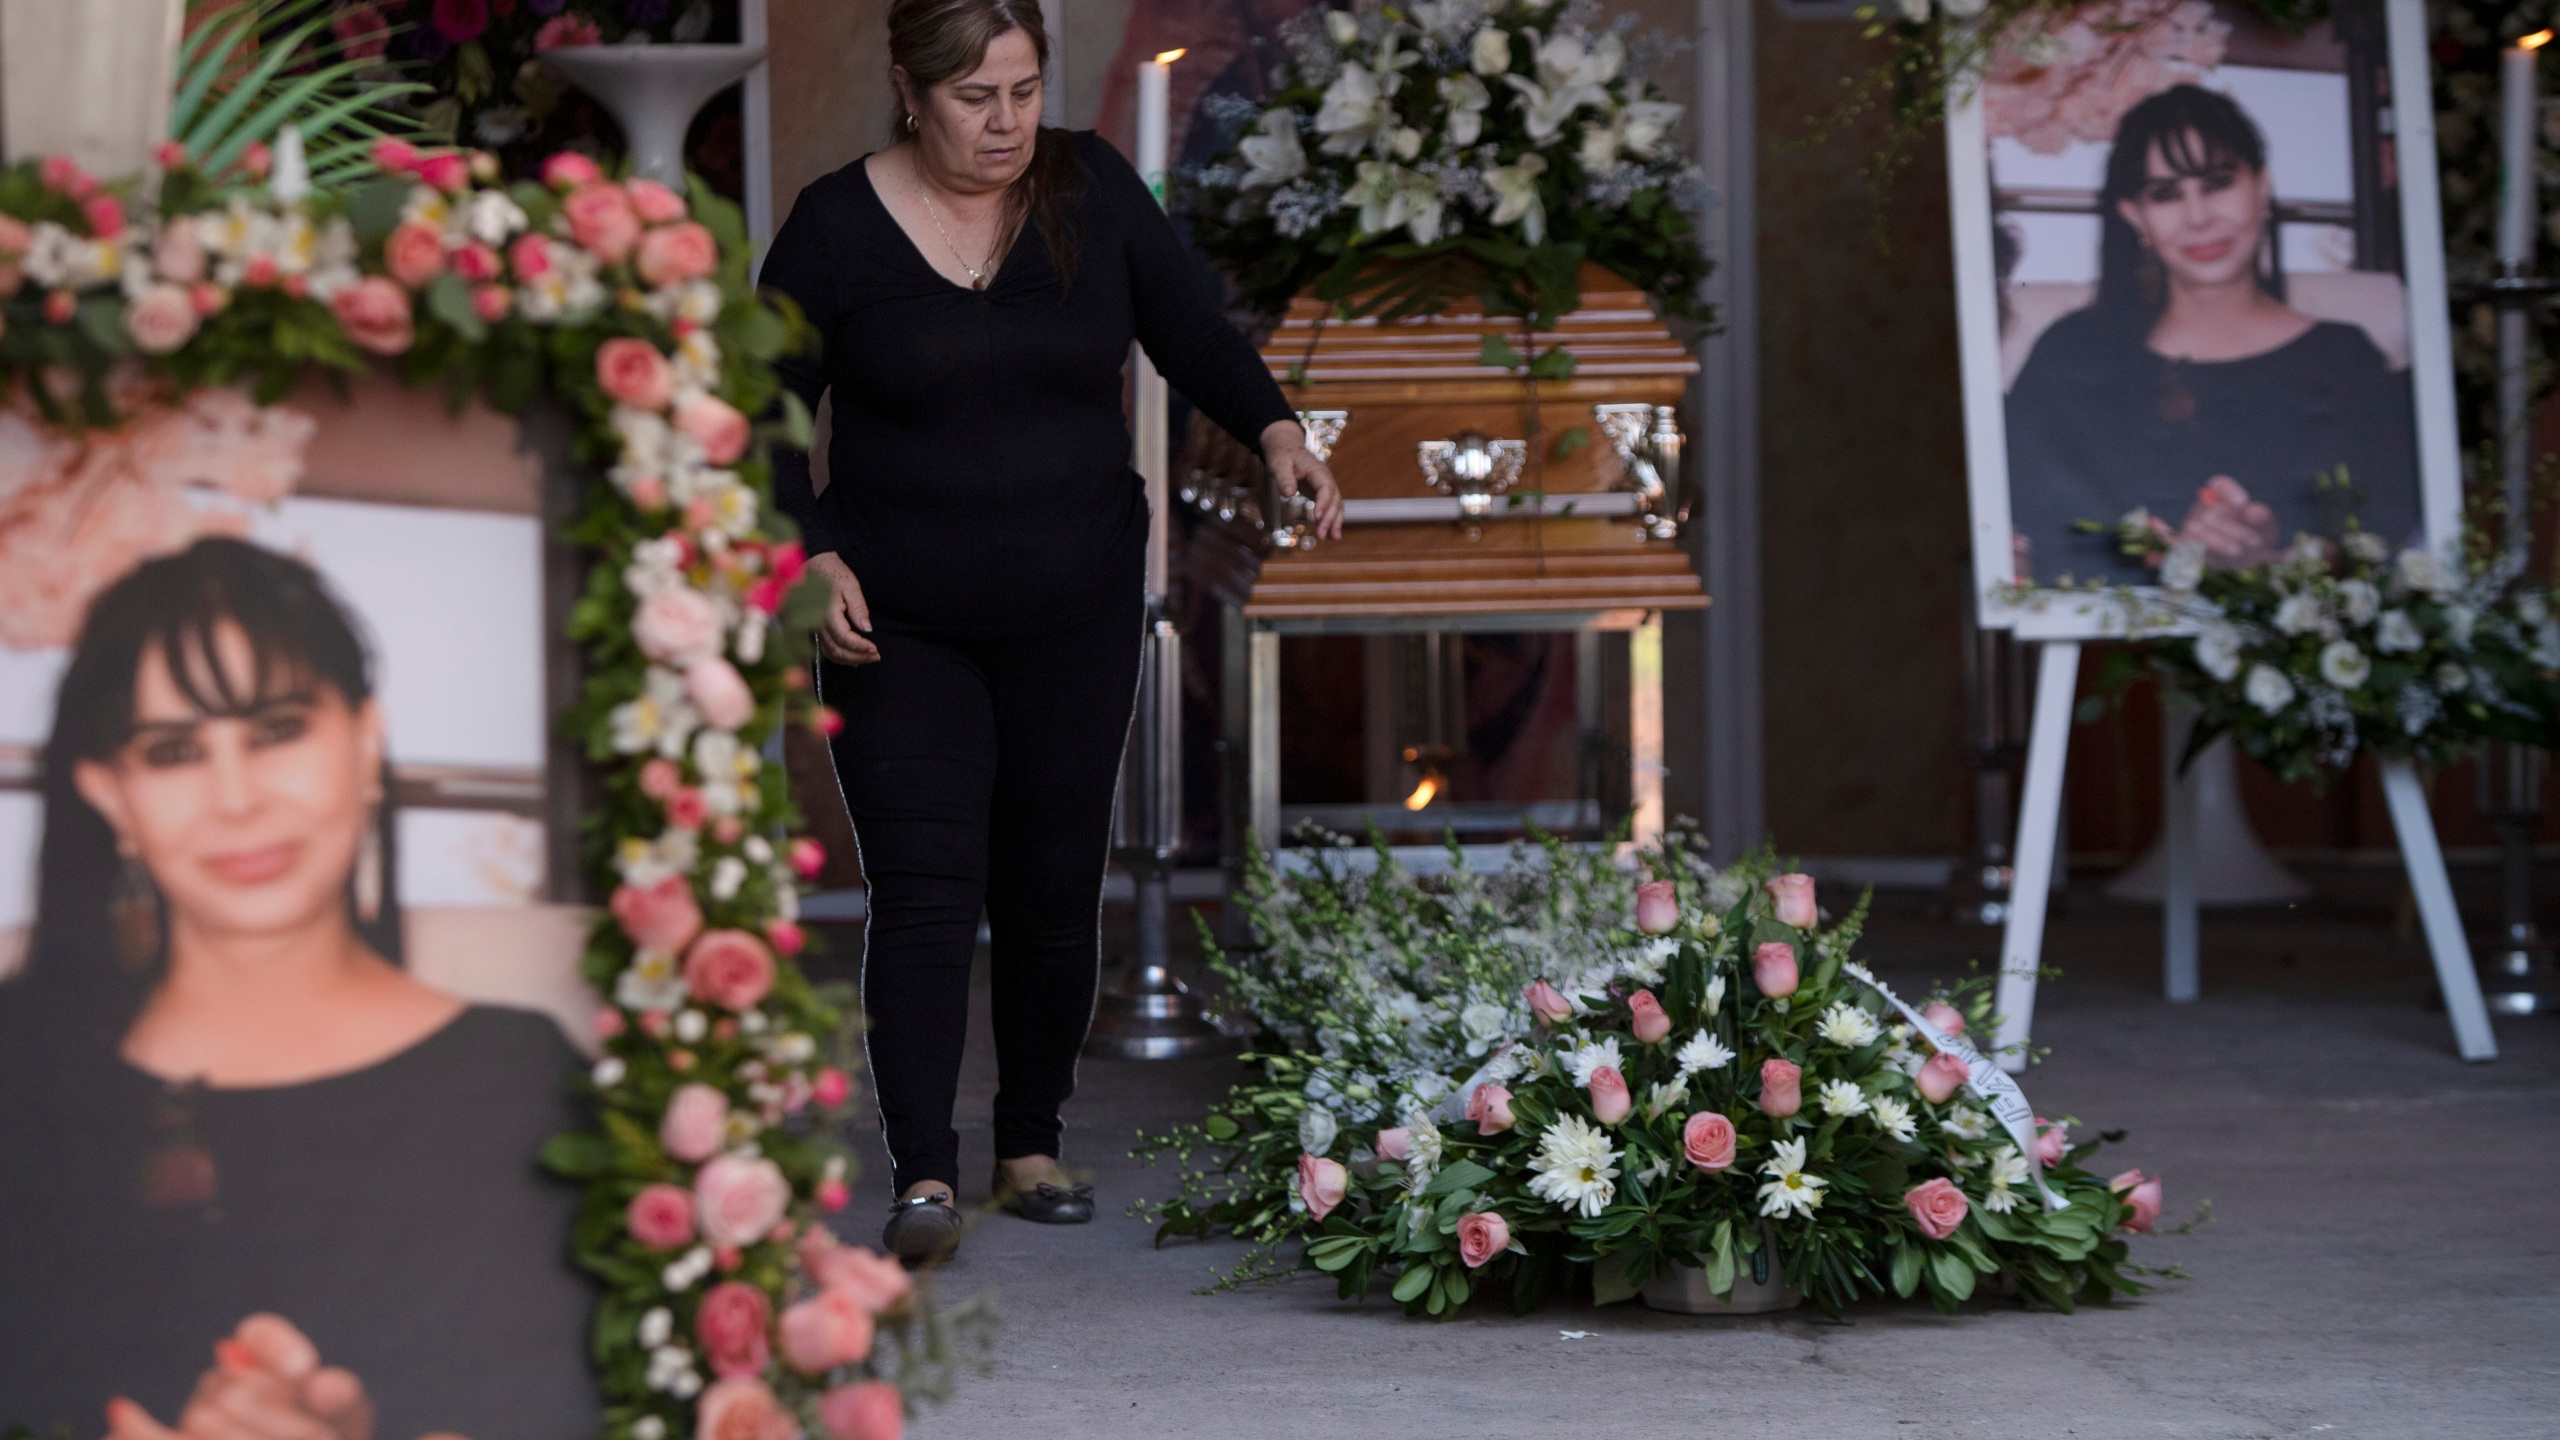 A woman attends the wake of mayoral candidate Alma Barragan in Moroleon, Mexico, on May 26, 2021. (Armando Solis / Associated Press)